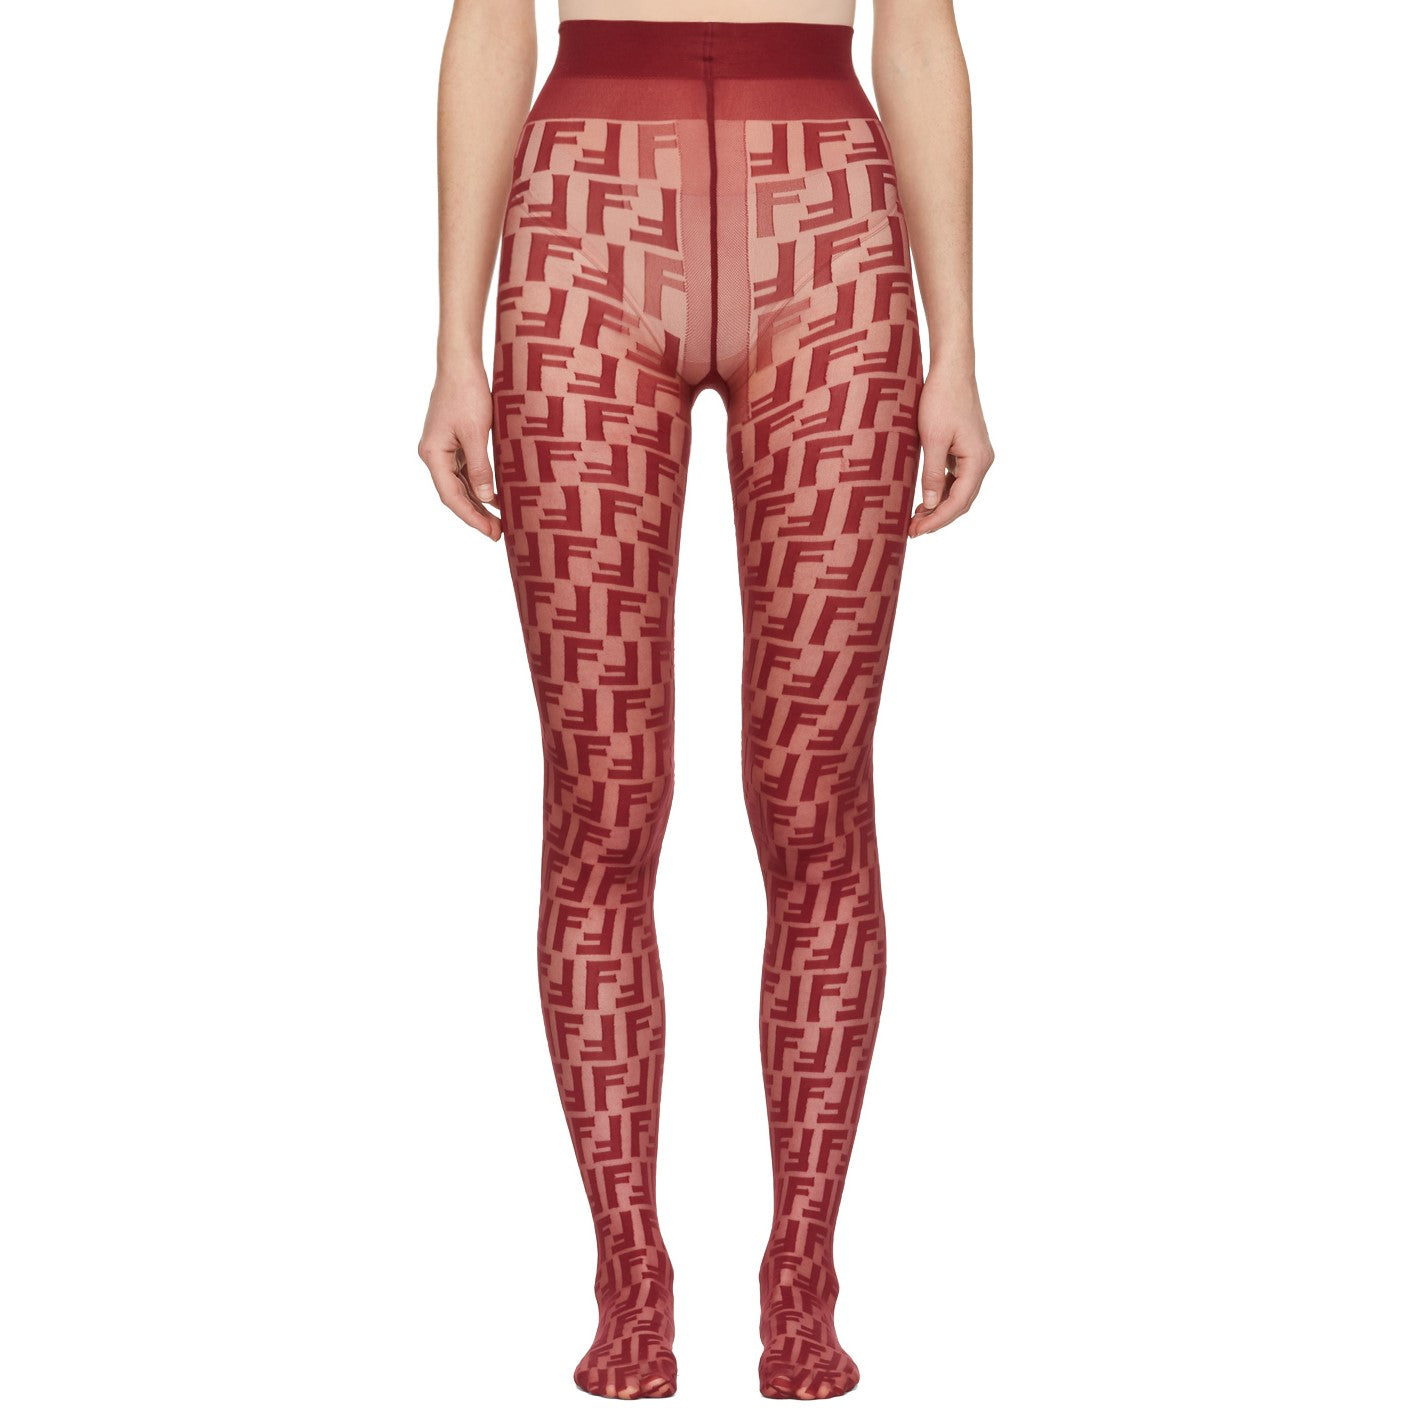 FF red logo tights